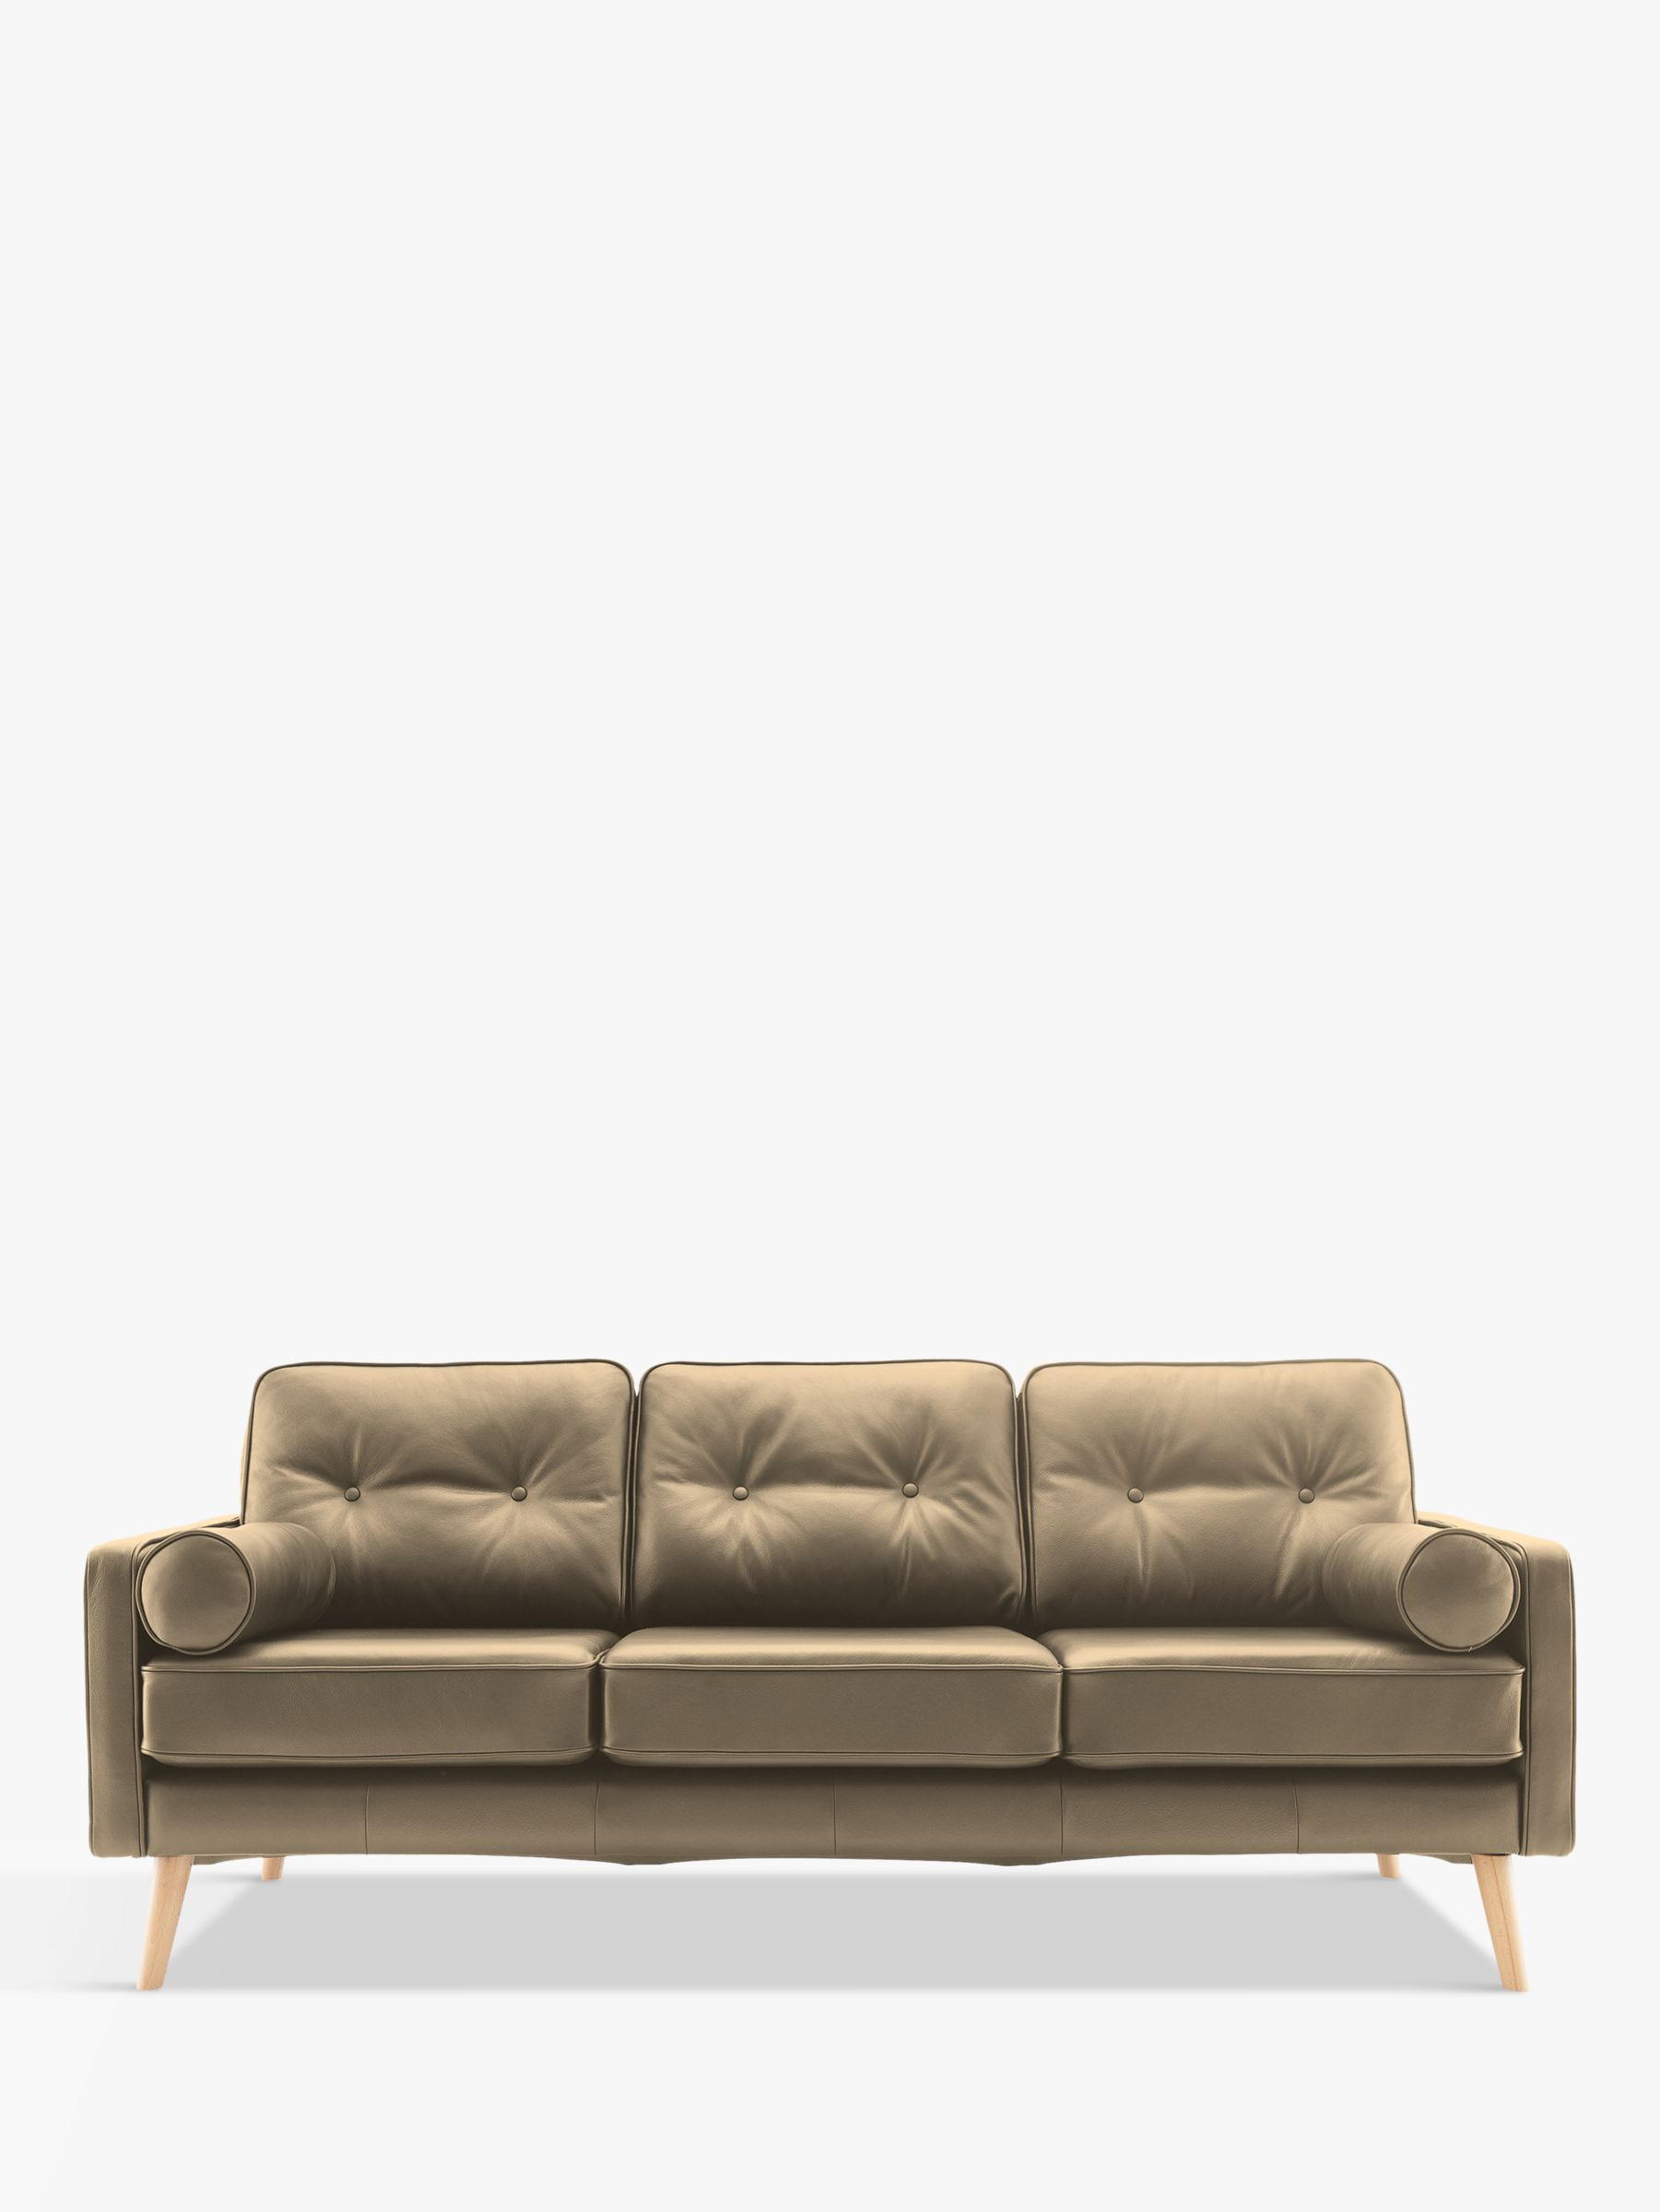 G Plan Vintage G Plan Vintage The Sixty Five Large 3 Seater Leather Sofa